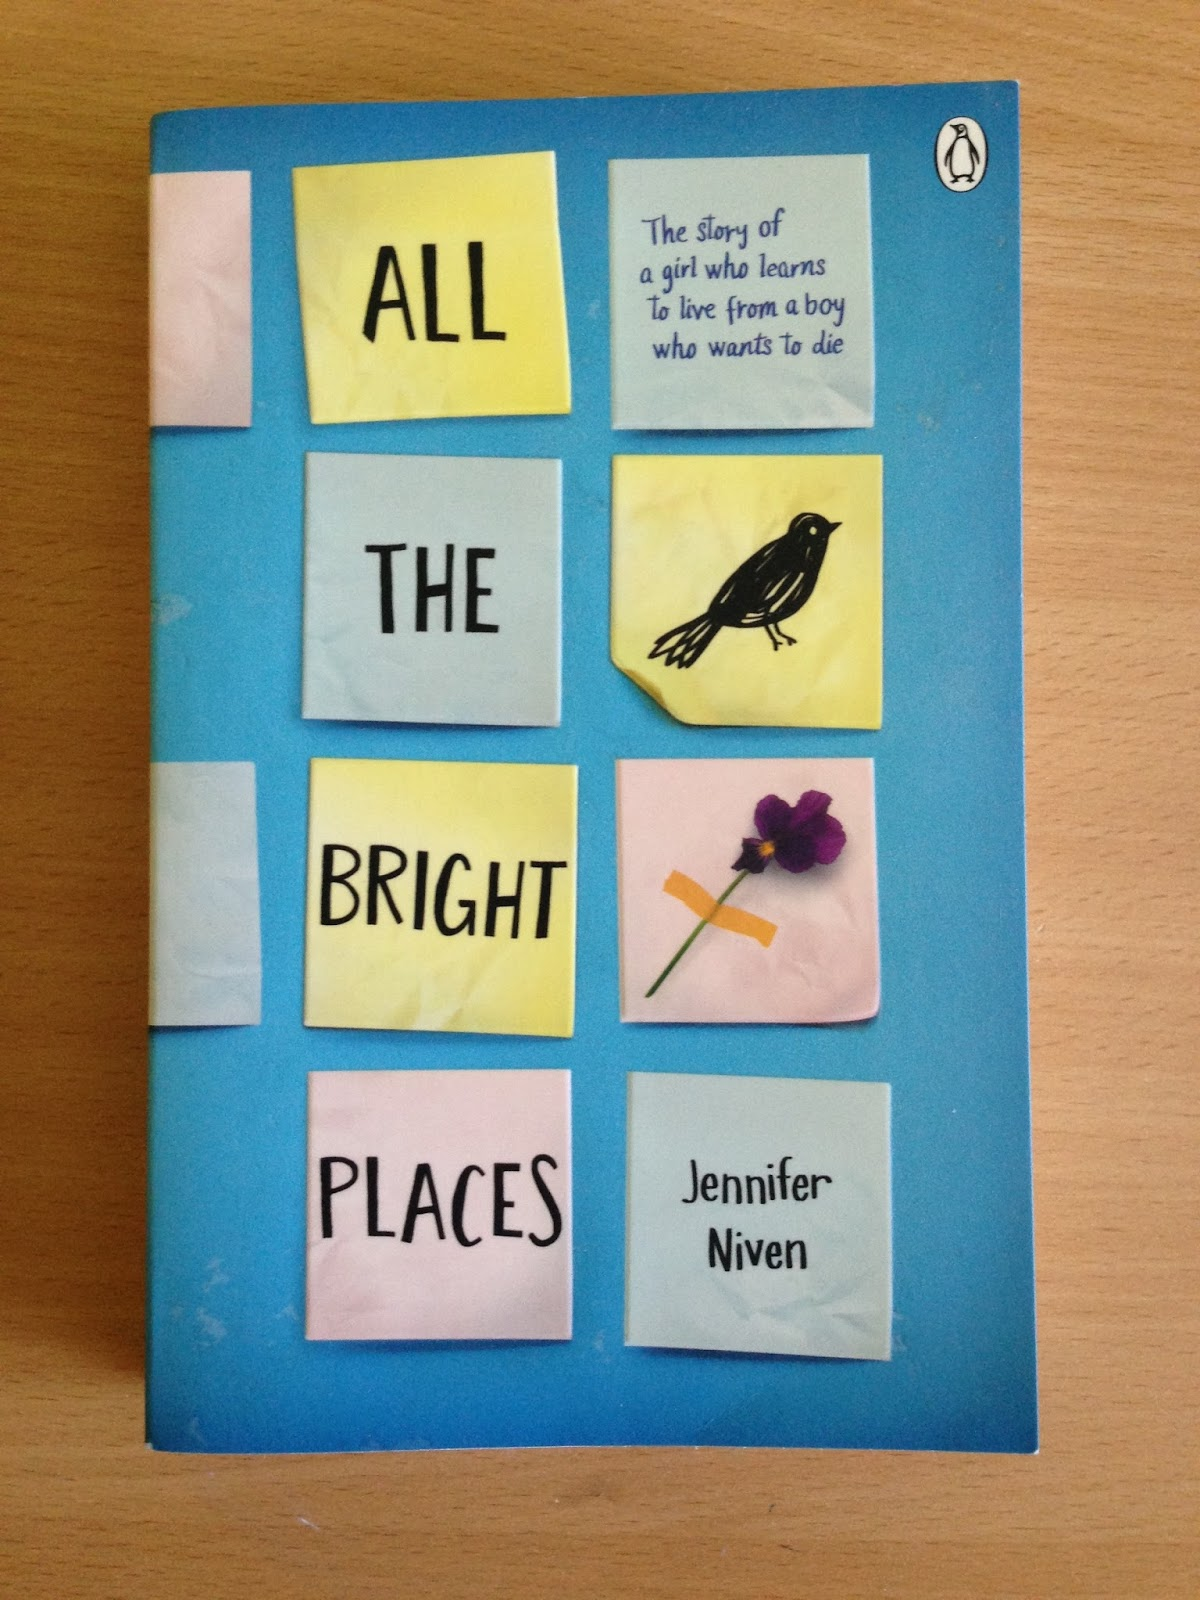 �all the bright places� by jennifer niven